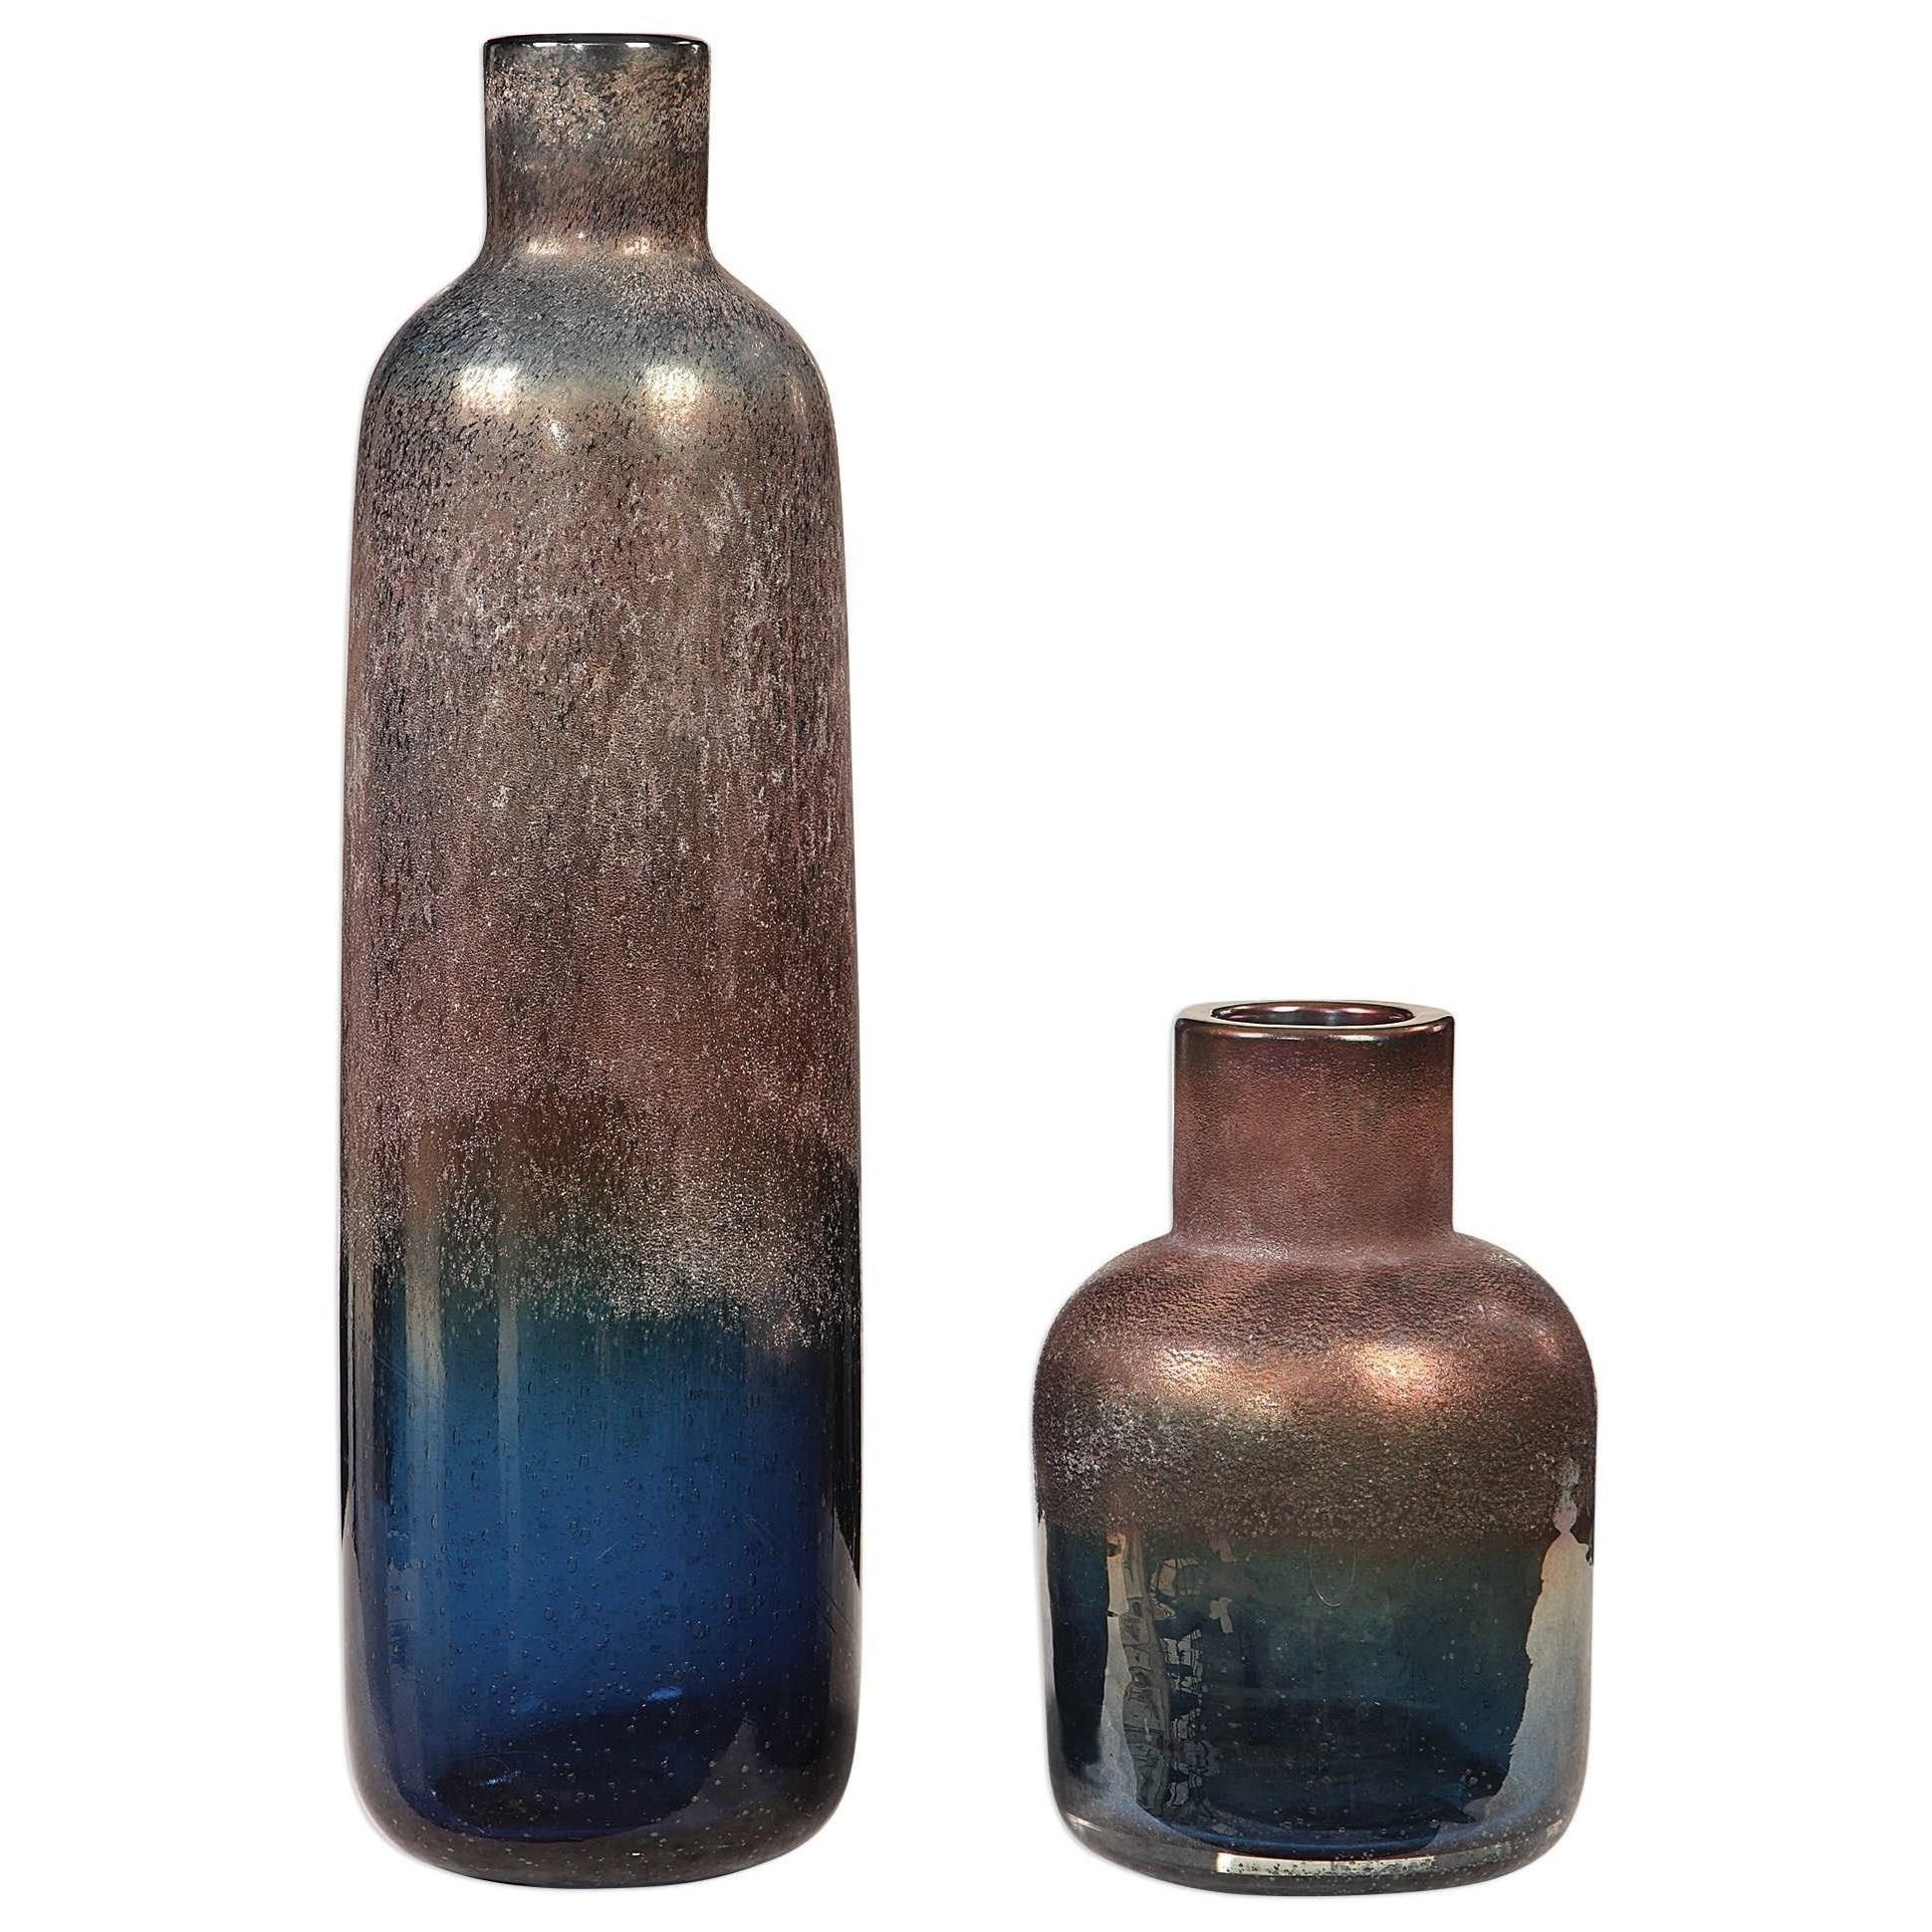 Accessories - Vases and Urns Korbin Blue Vases, S/2 by Uttermost at Suburban Furniture